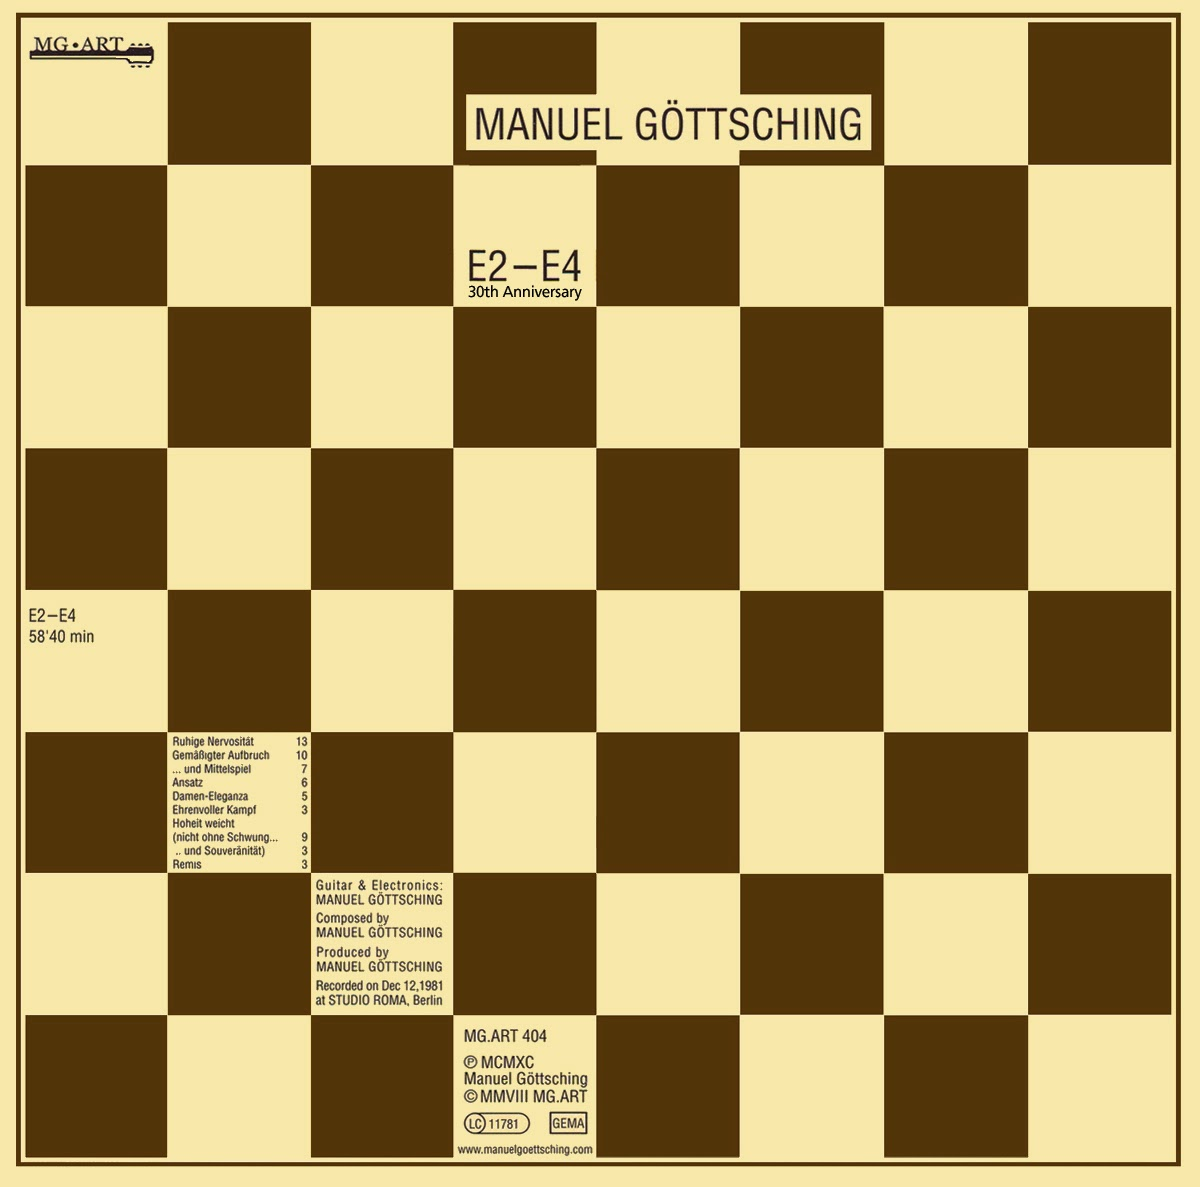 Manuel Göttsching – E2-E4 (1984) / source : MG.ART www.ashra.com